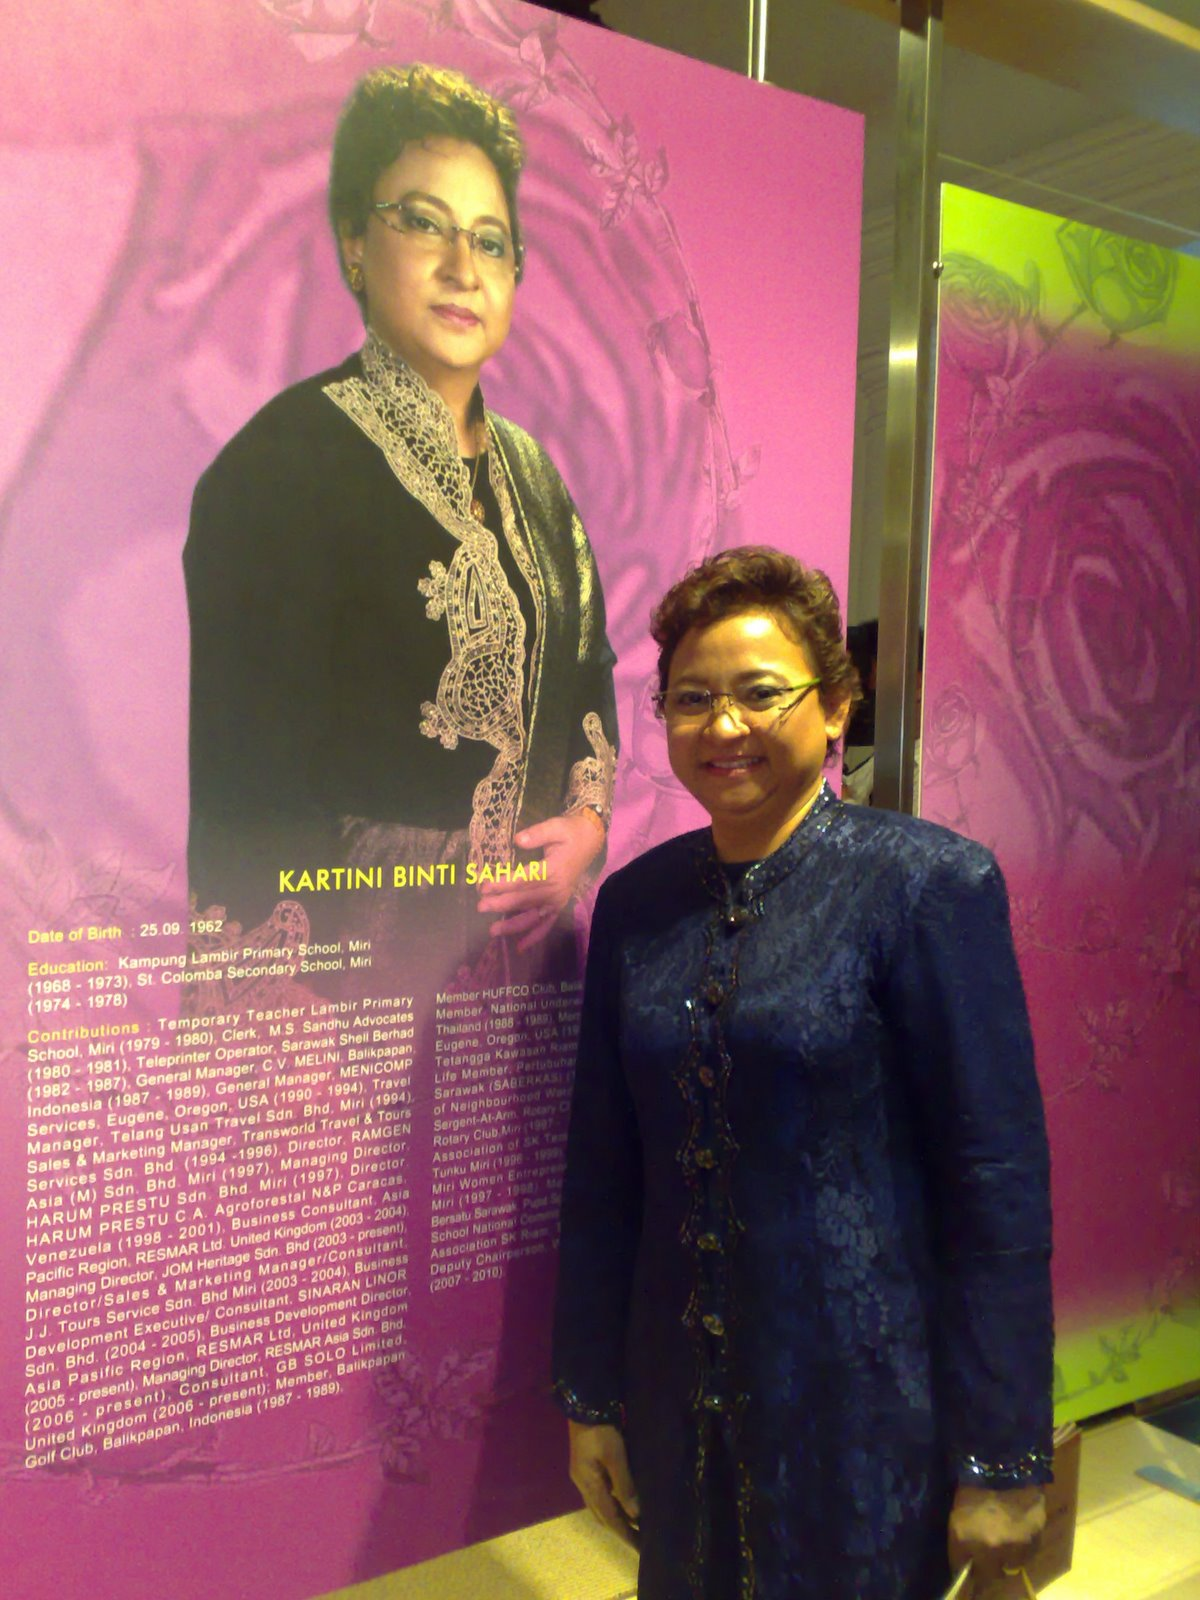 Welcome to Kartini's Blog Centre